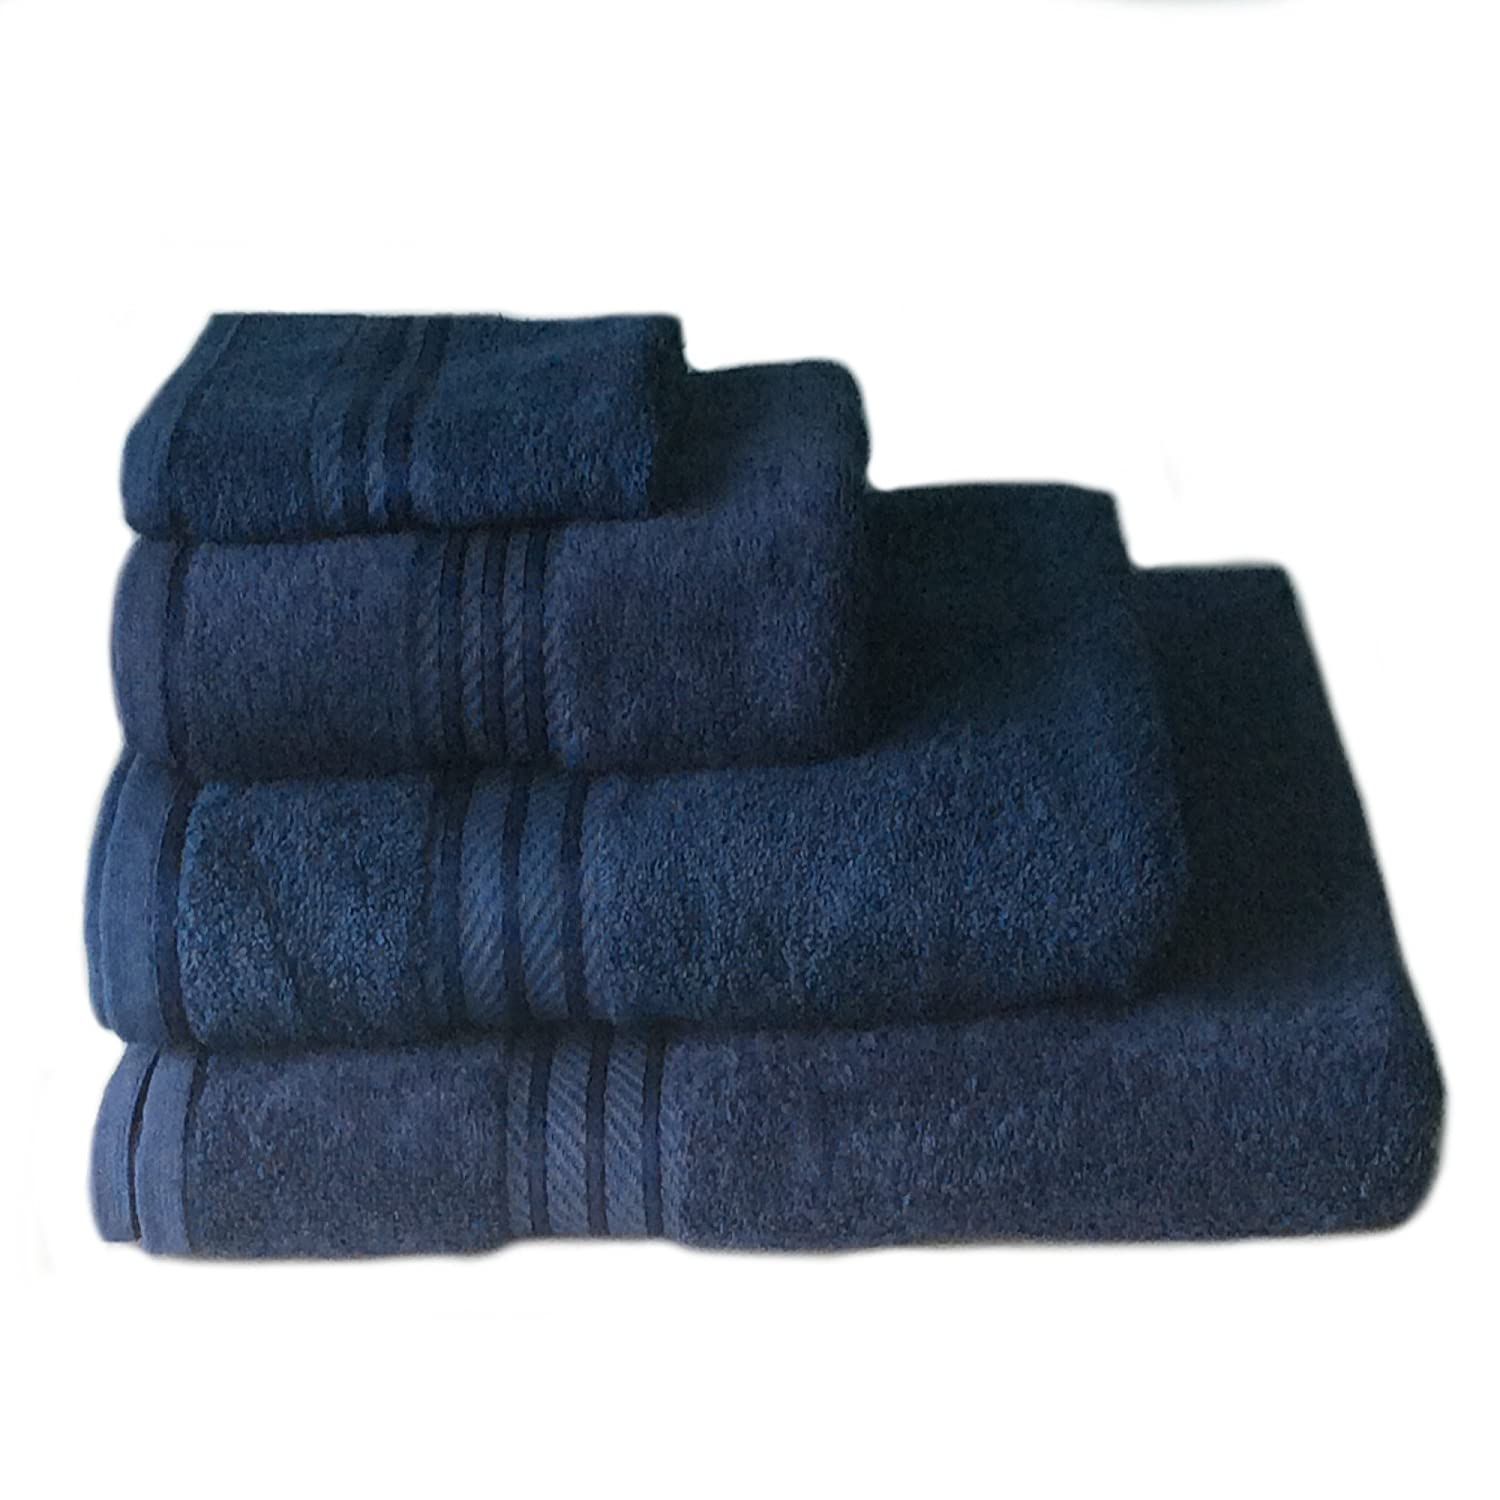 Sue Rossi Ltd Supreme 100% Egyptian Cotton Towels Navy Blue Bath Sheet